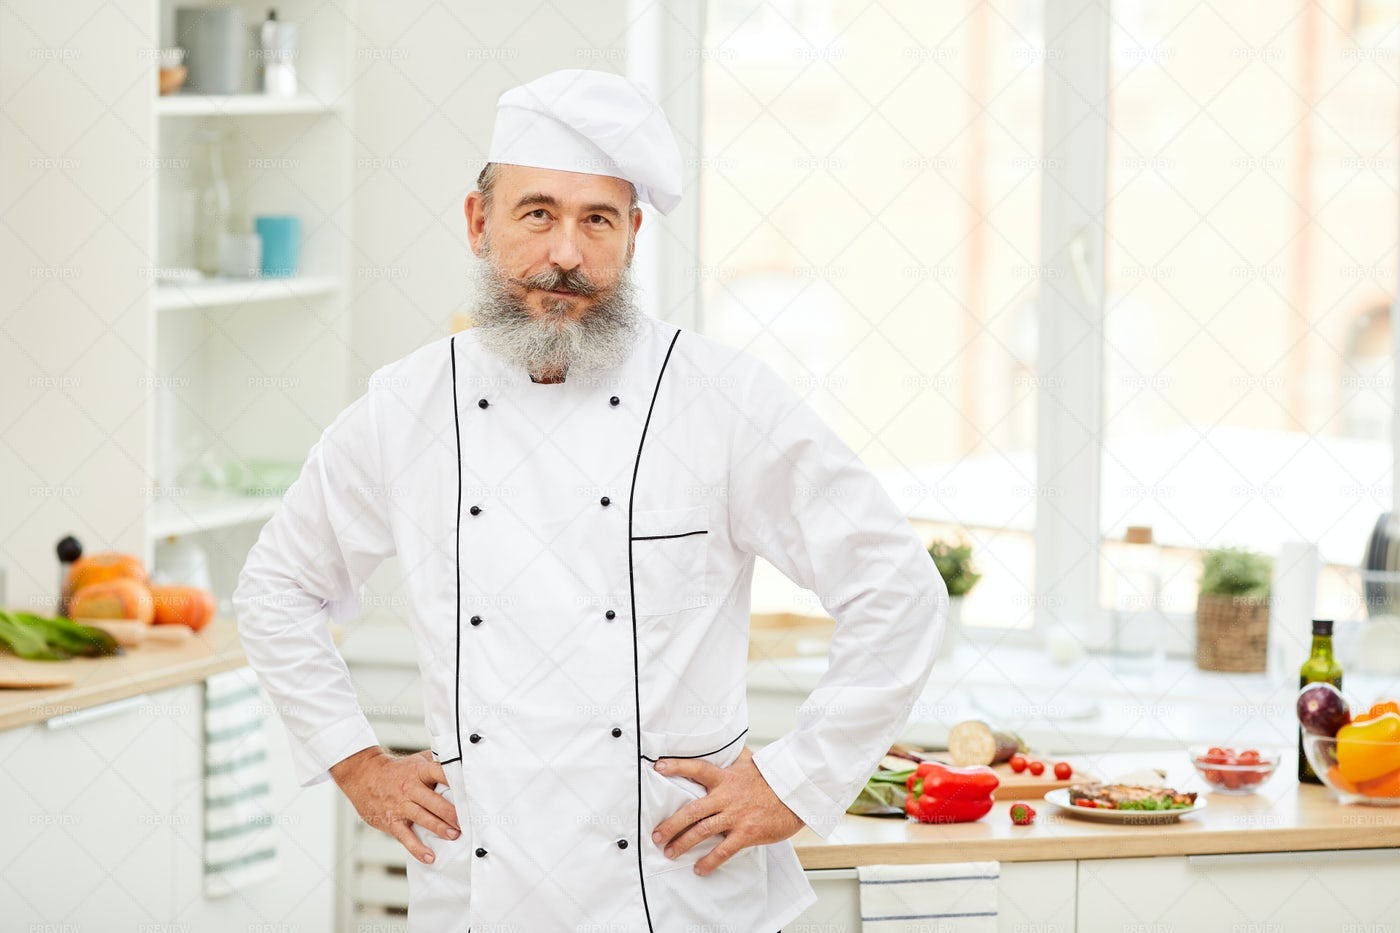 Professional Chef In Kitchen: Stock Photos